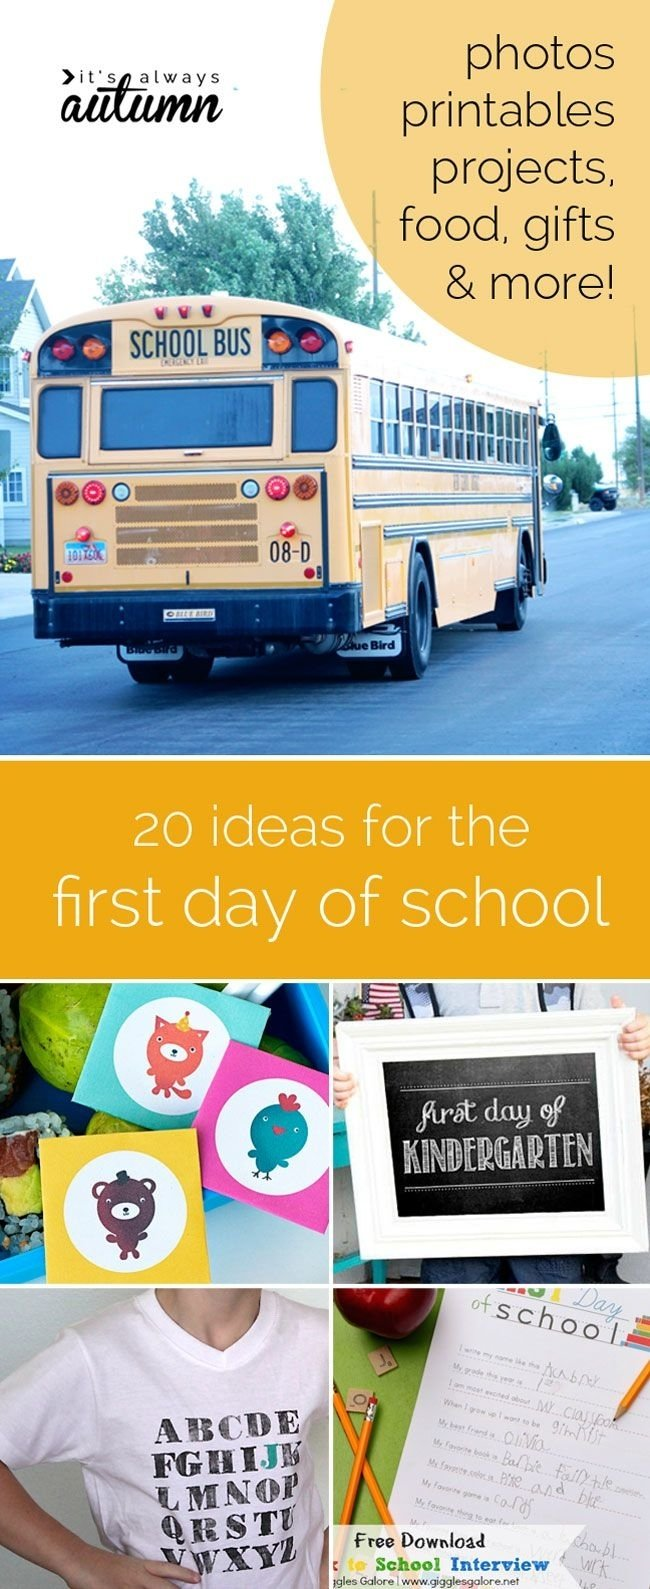 10 Best Commercial Ideas For School Project 229 best kids back to school ideas images on pinterest back to 2020